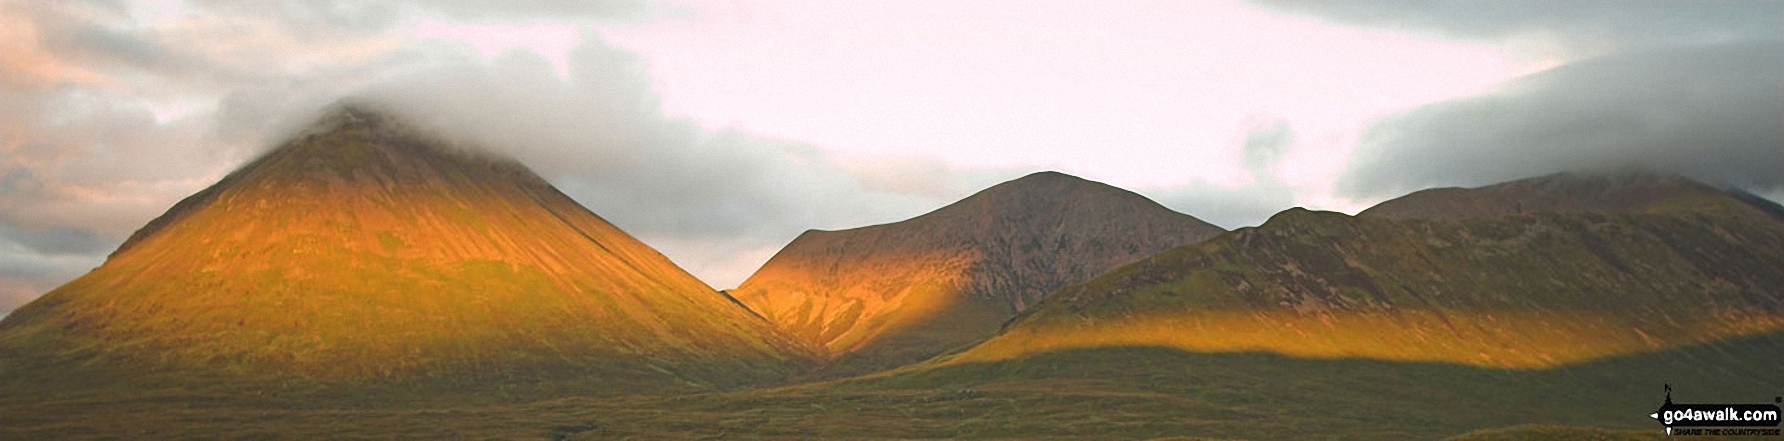 Glamaig in sunset taken from Sligachan